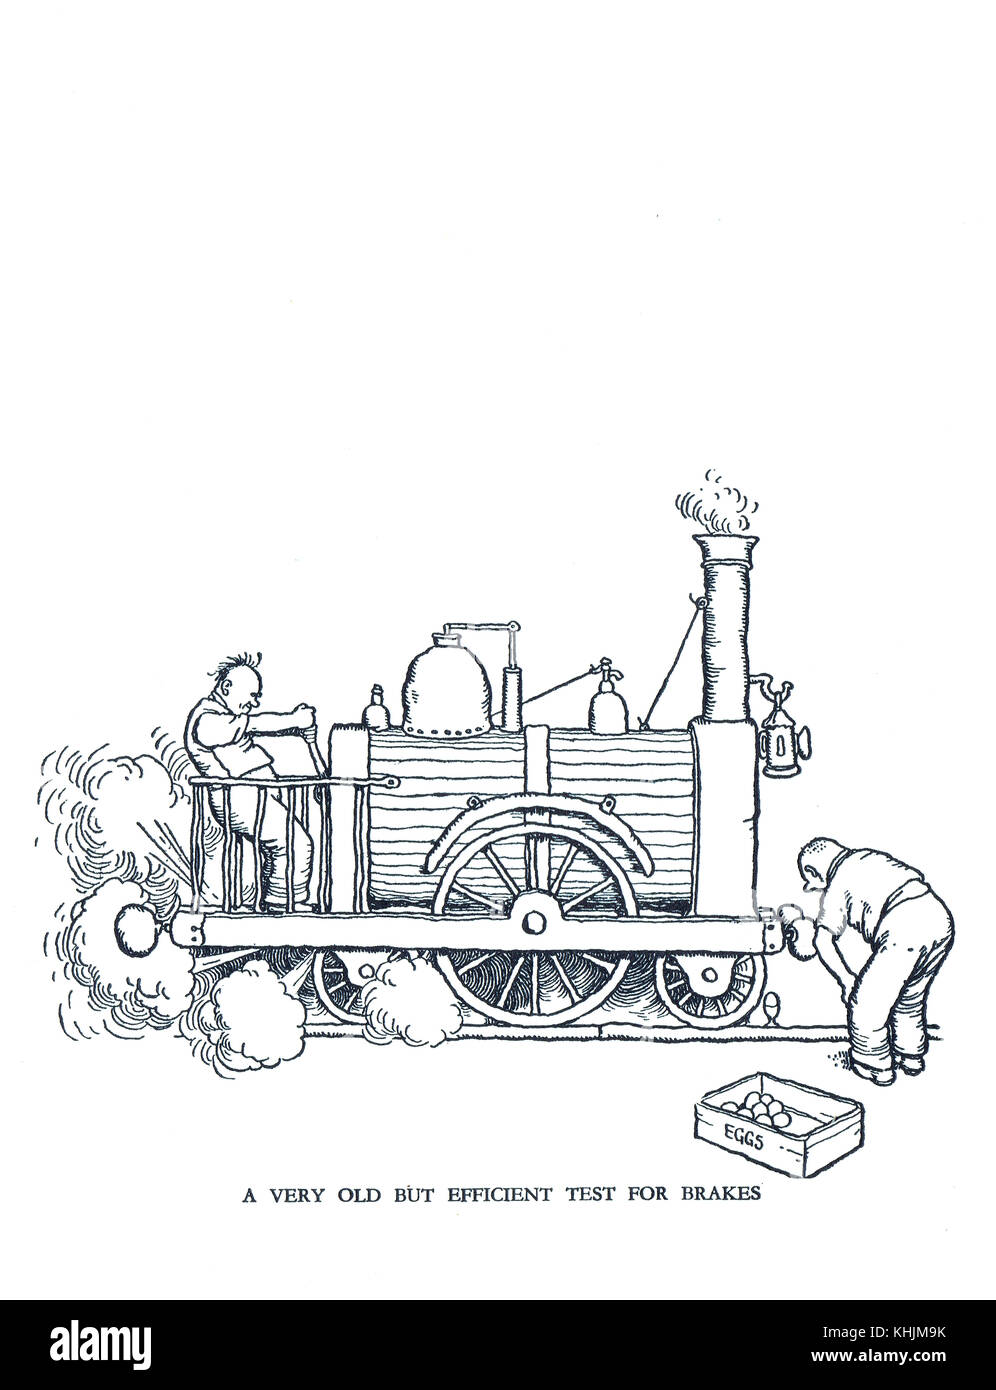 A Very old but efficient test for brakes, Cartoon by William Heath Robinson - Stock Image